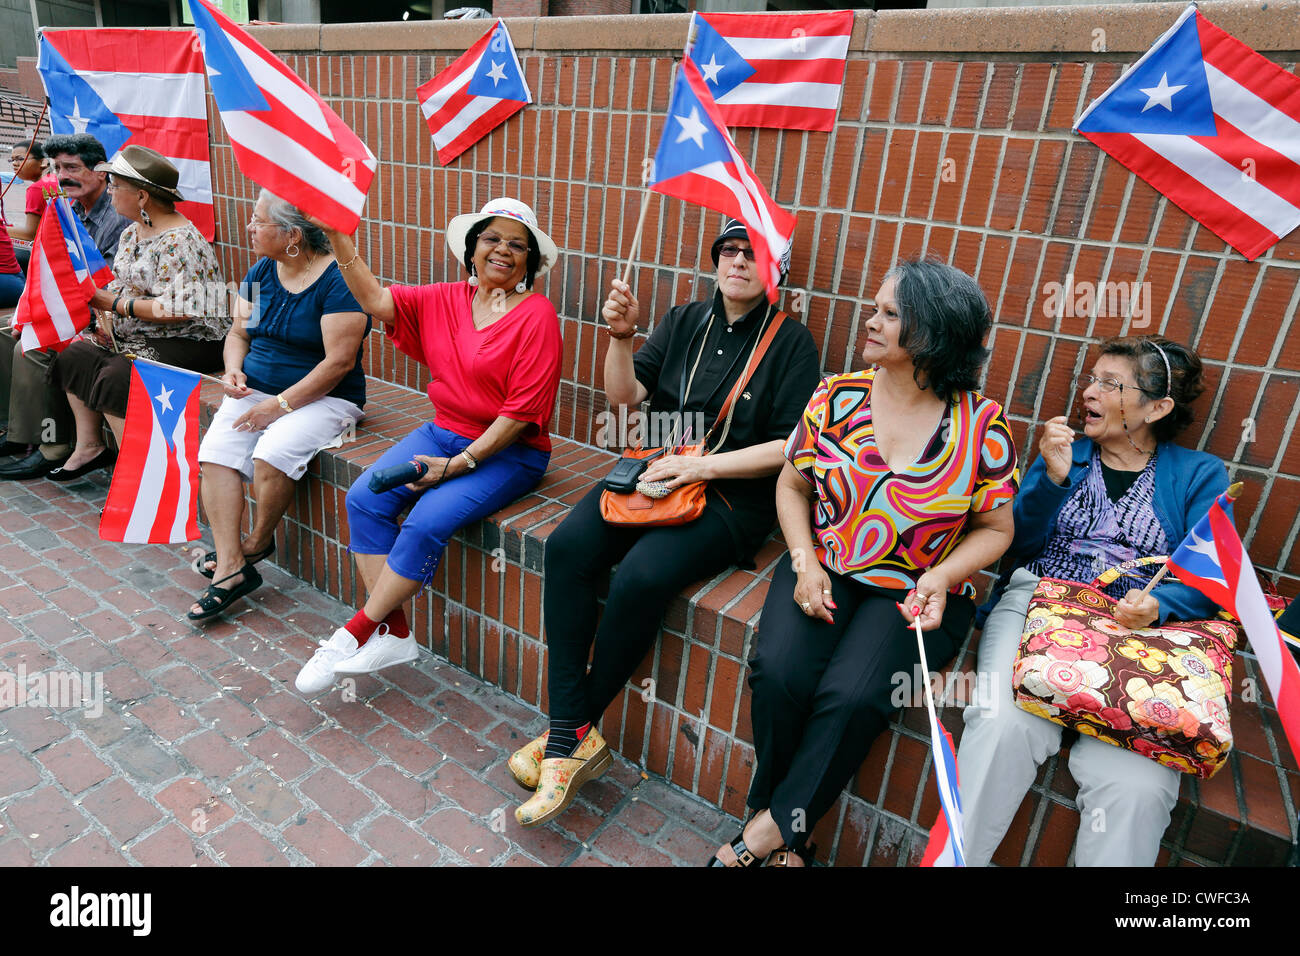 Puerto Rican women during festival on City Hall Plaza, Boston, Massachusetts - Stock Image